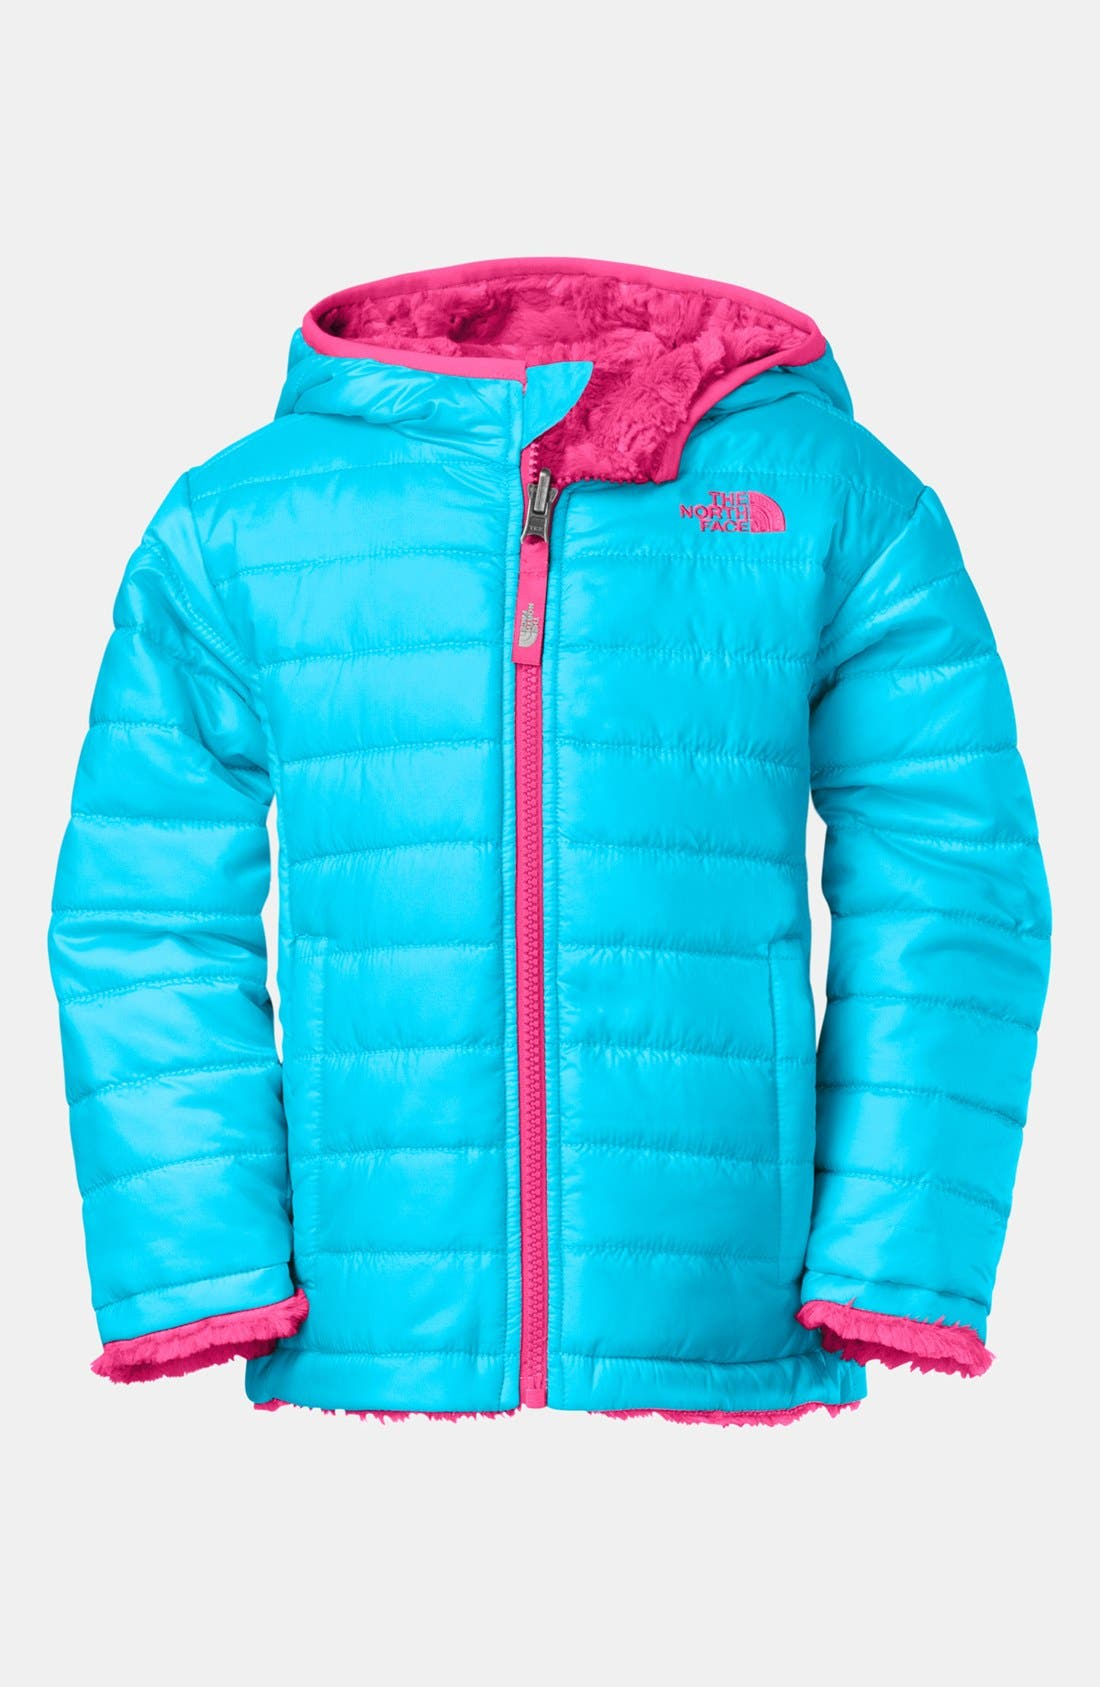 Main Image - The North Face 'Mossbud Swirl' Reversible Water Repellent Jacket(Toddler Girls)